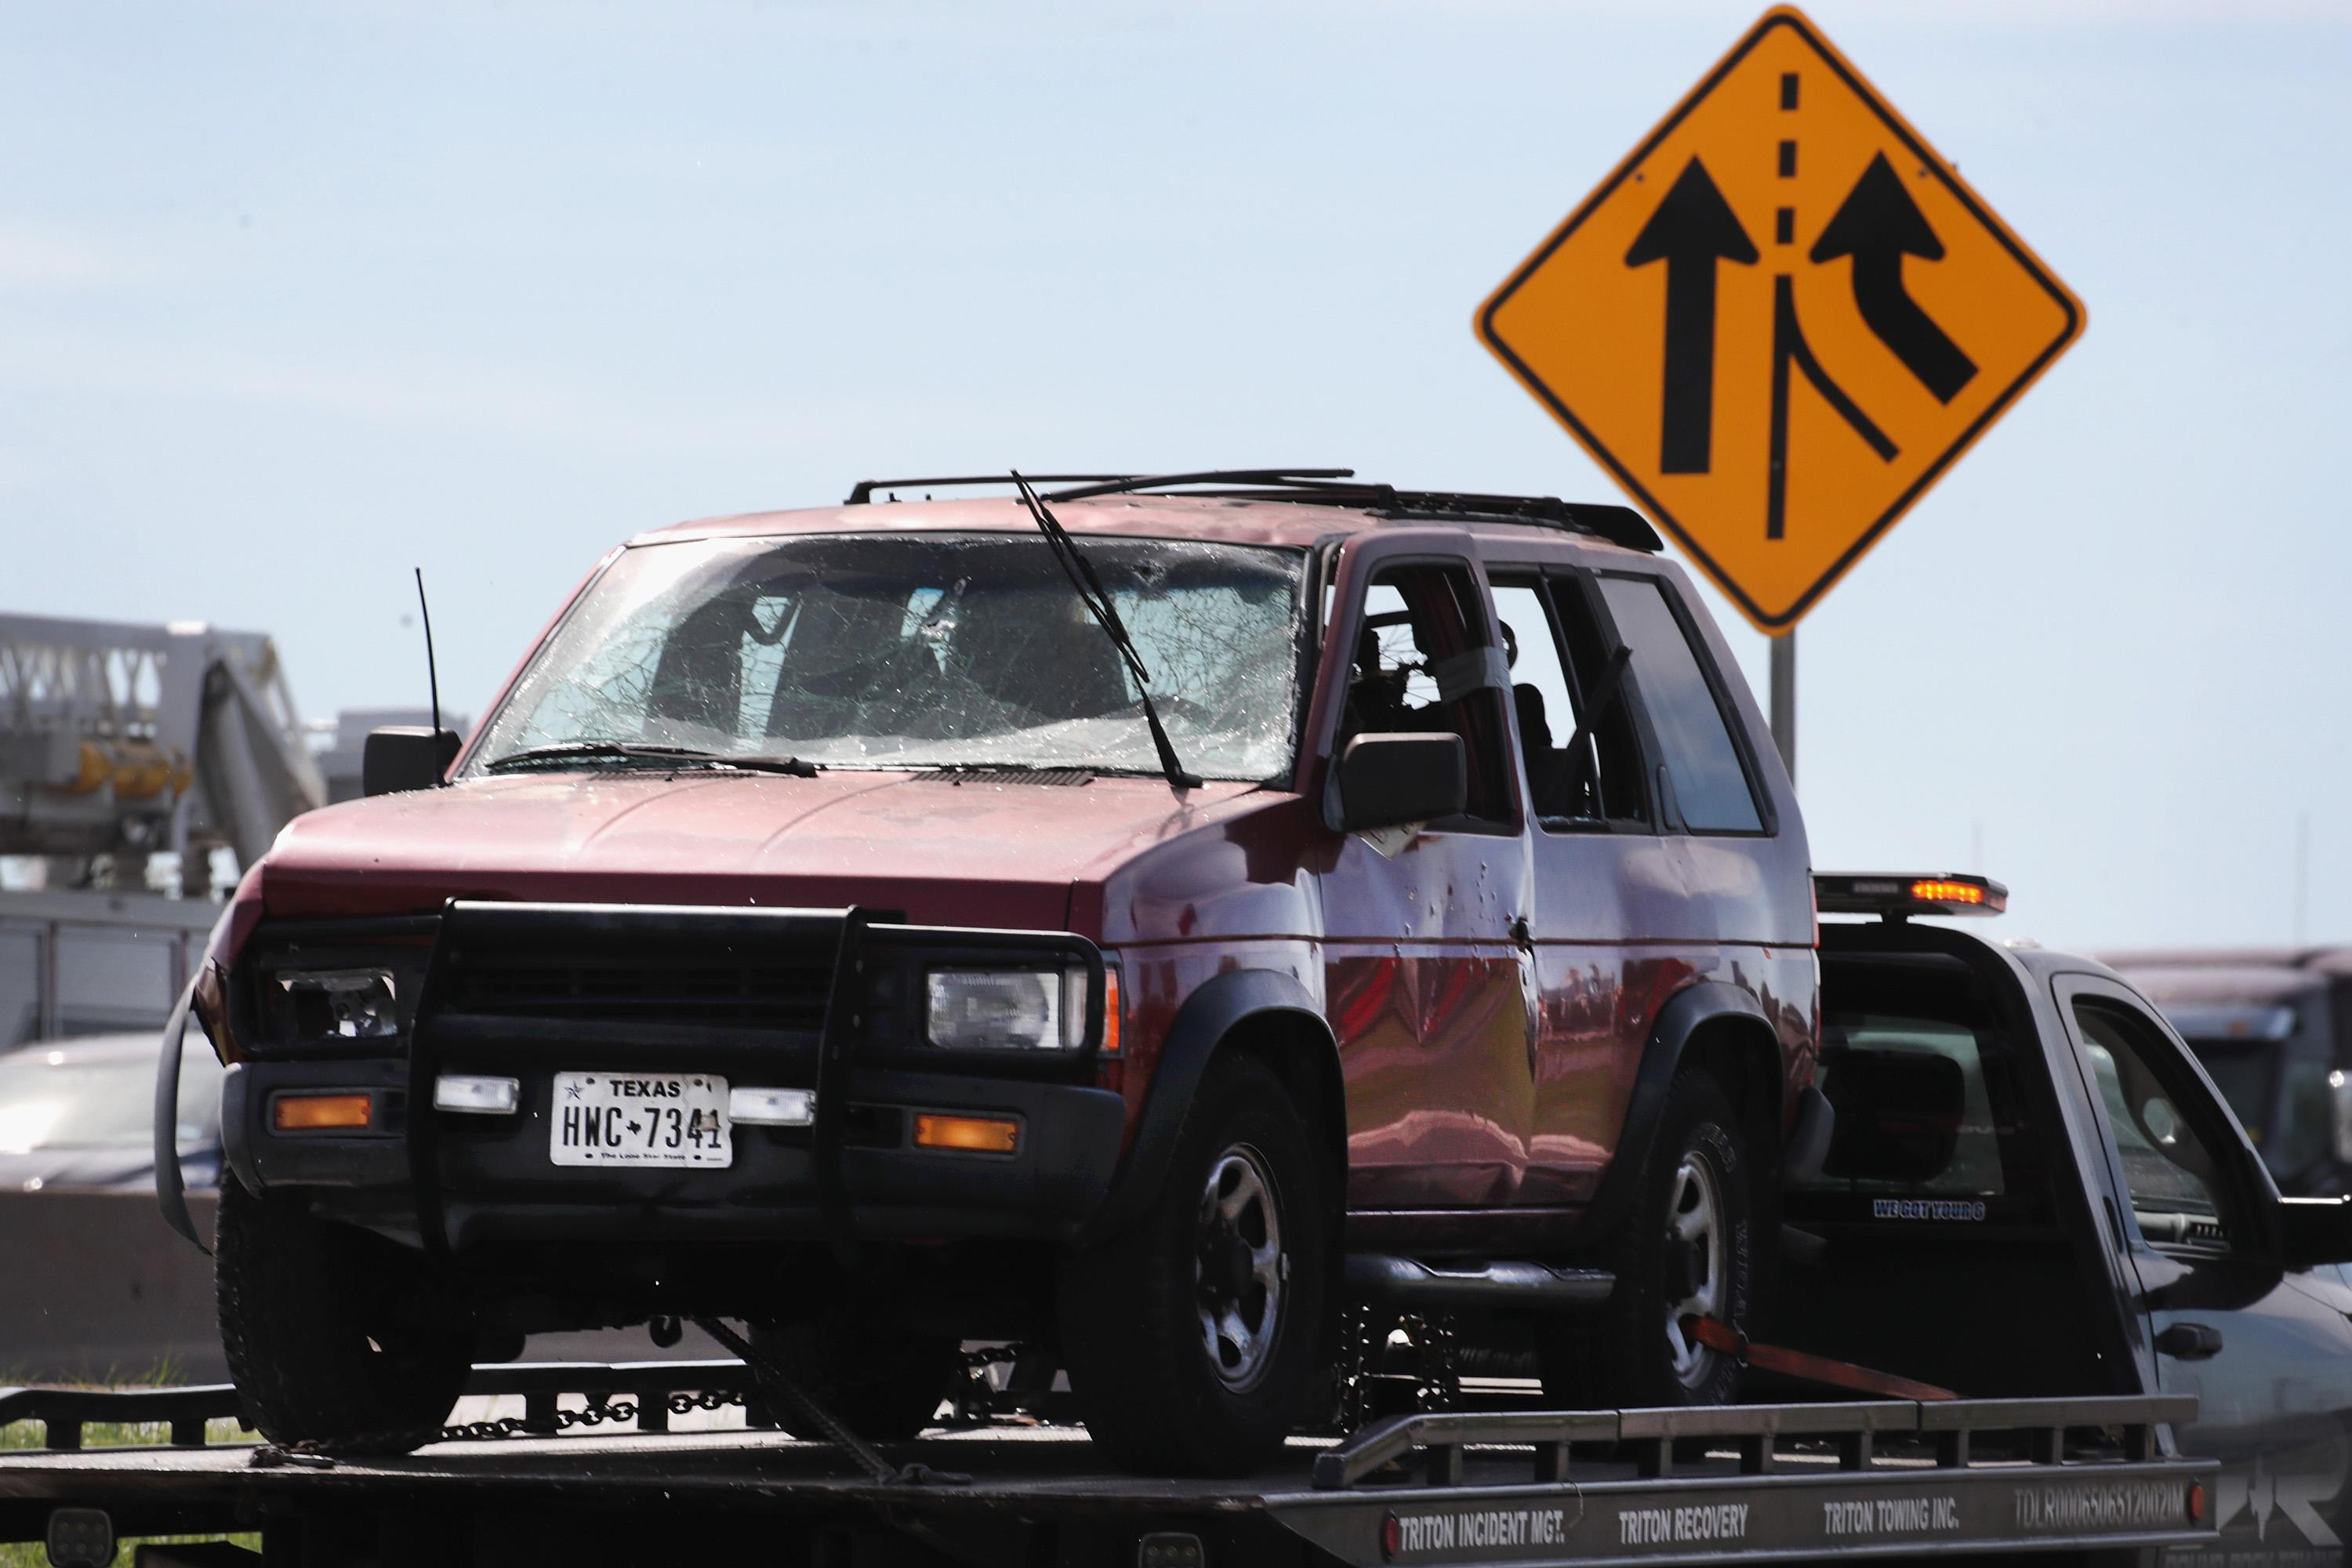 The vehicle that the Austin package bomber, Mark Anthony Conditt, was driving when he blew himself up is towed from the crime scene along Interstate 35 in suburban Austin on March 21, 2018 in Round Rock, Texas.